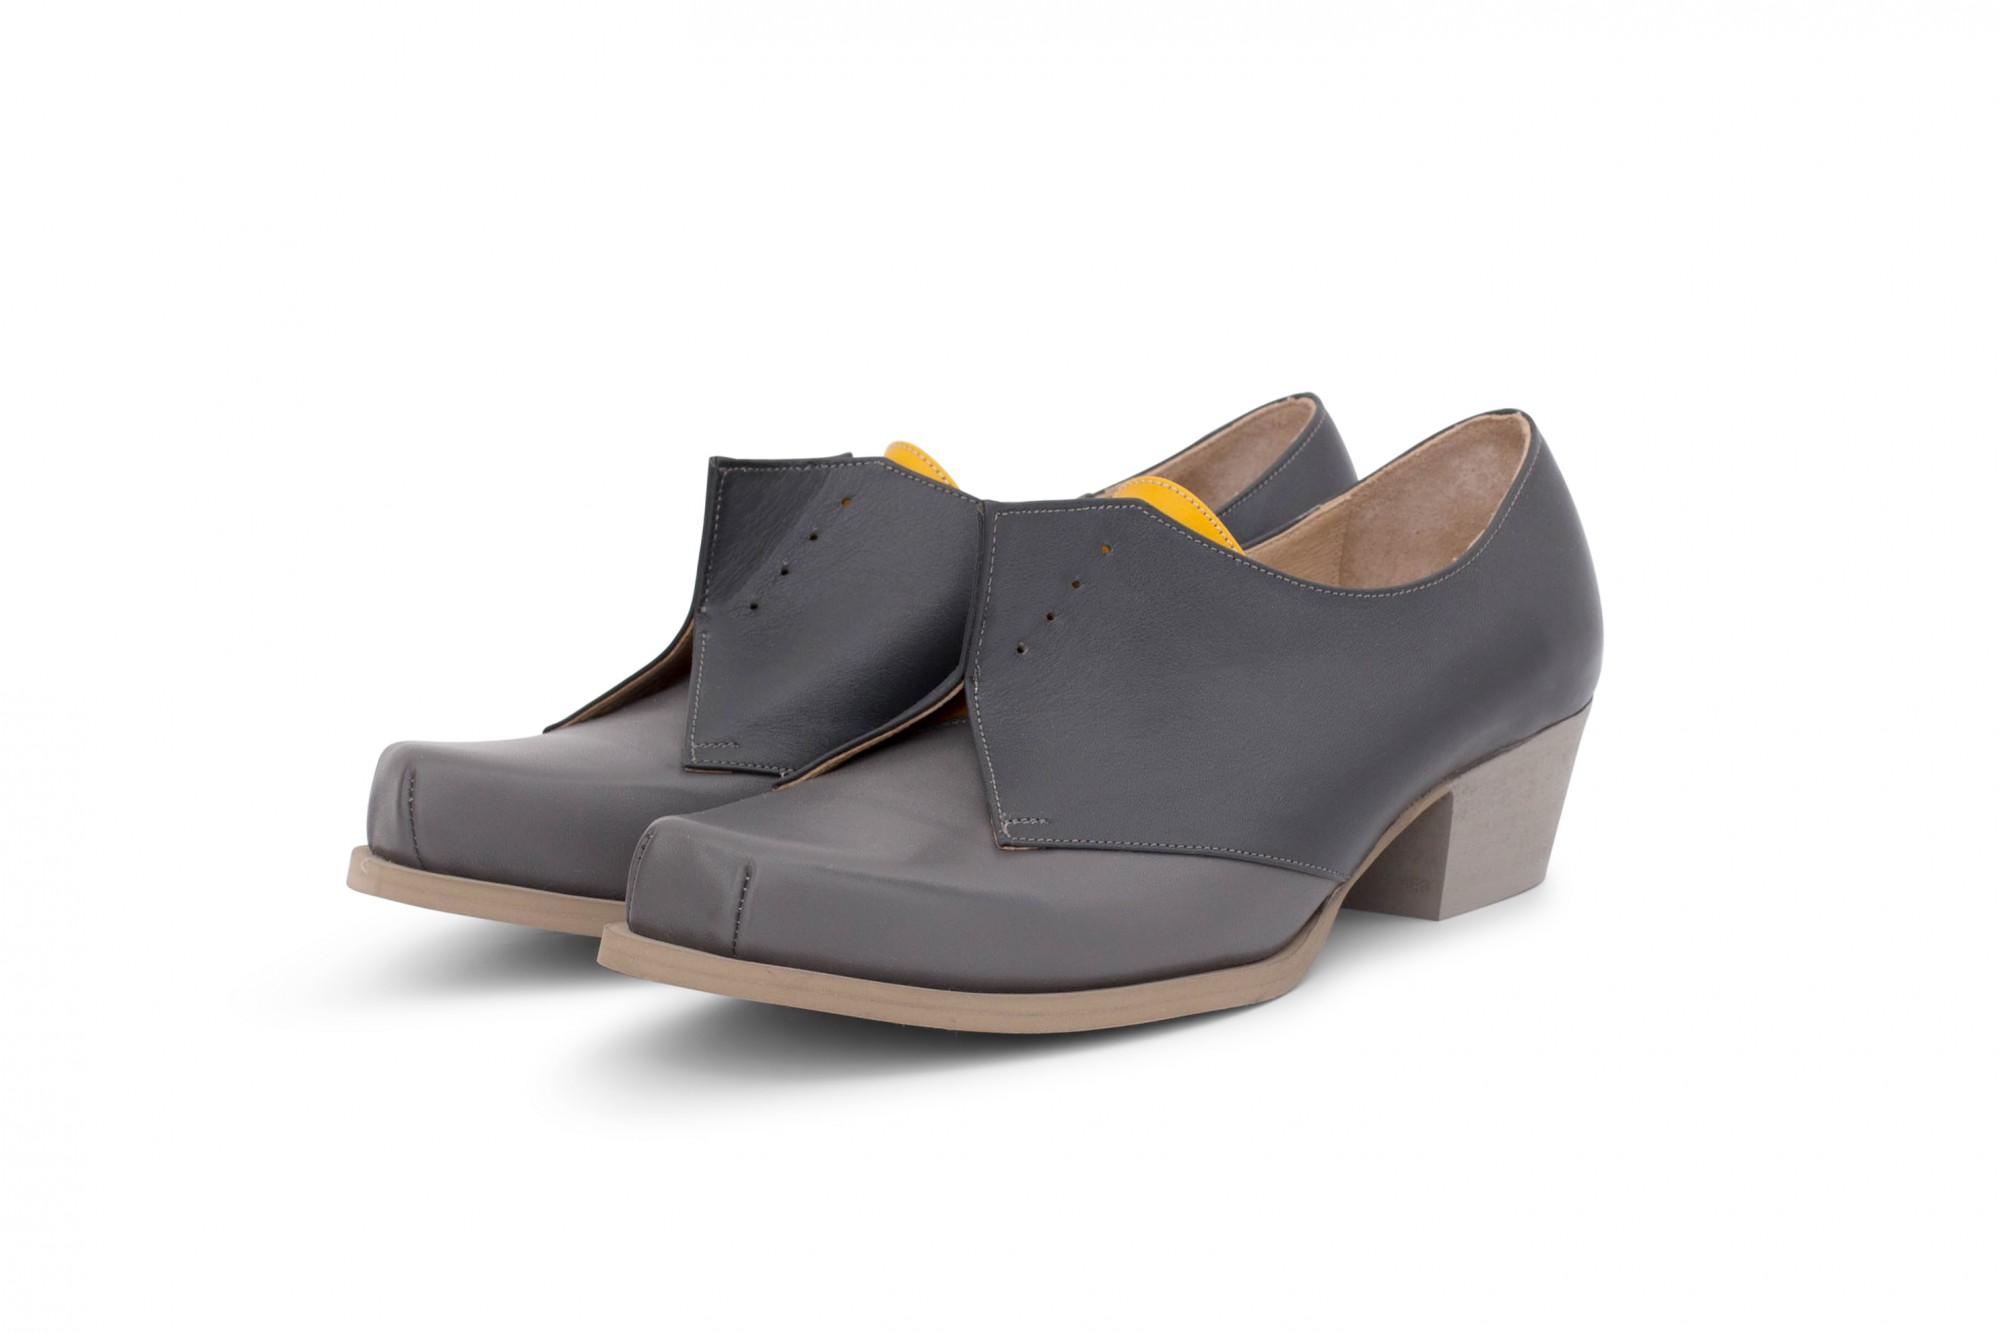 cb09c7111ff Gray Edgy shoes heeled. Geometric designed women's heel shoes in gray  leather